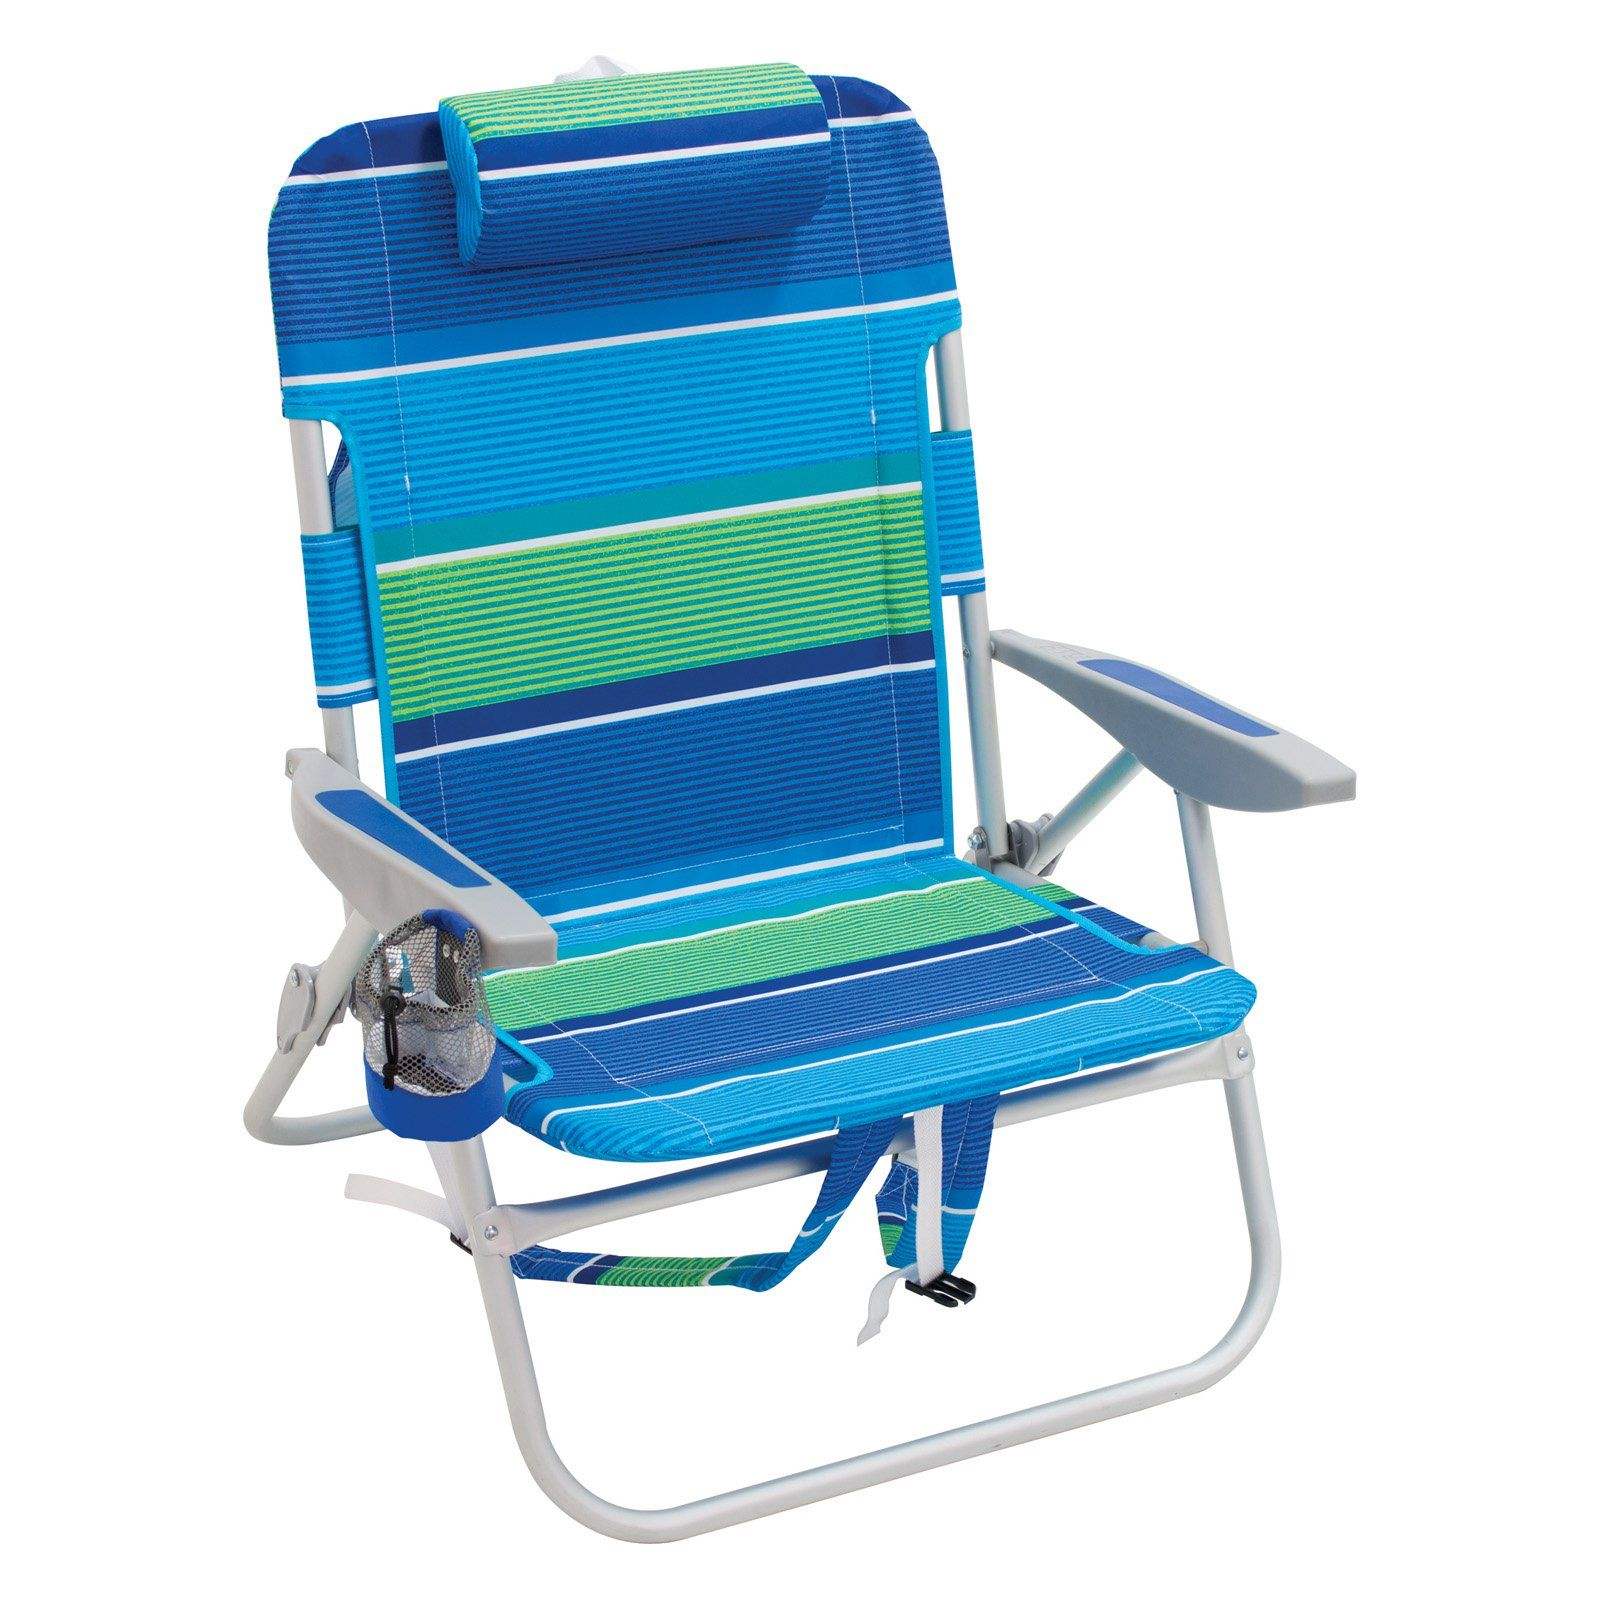 Remarkable Outdoor Rio Extra Wide Backpack Beach Chair Global Stripe Caraccident5 Cool Chair Designs And Ideas Caraccident5Info